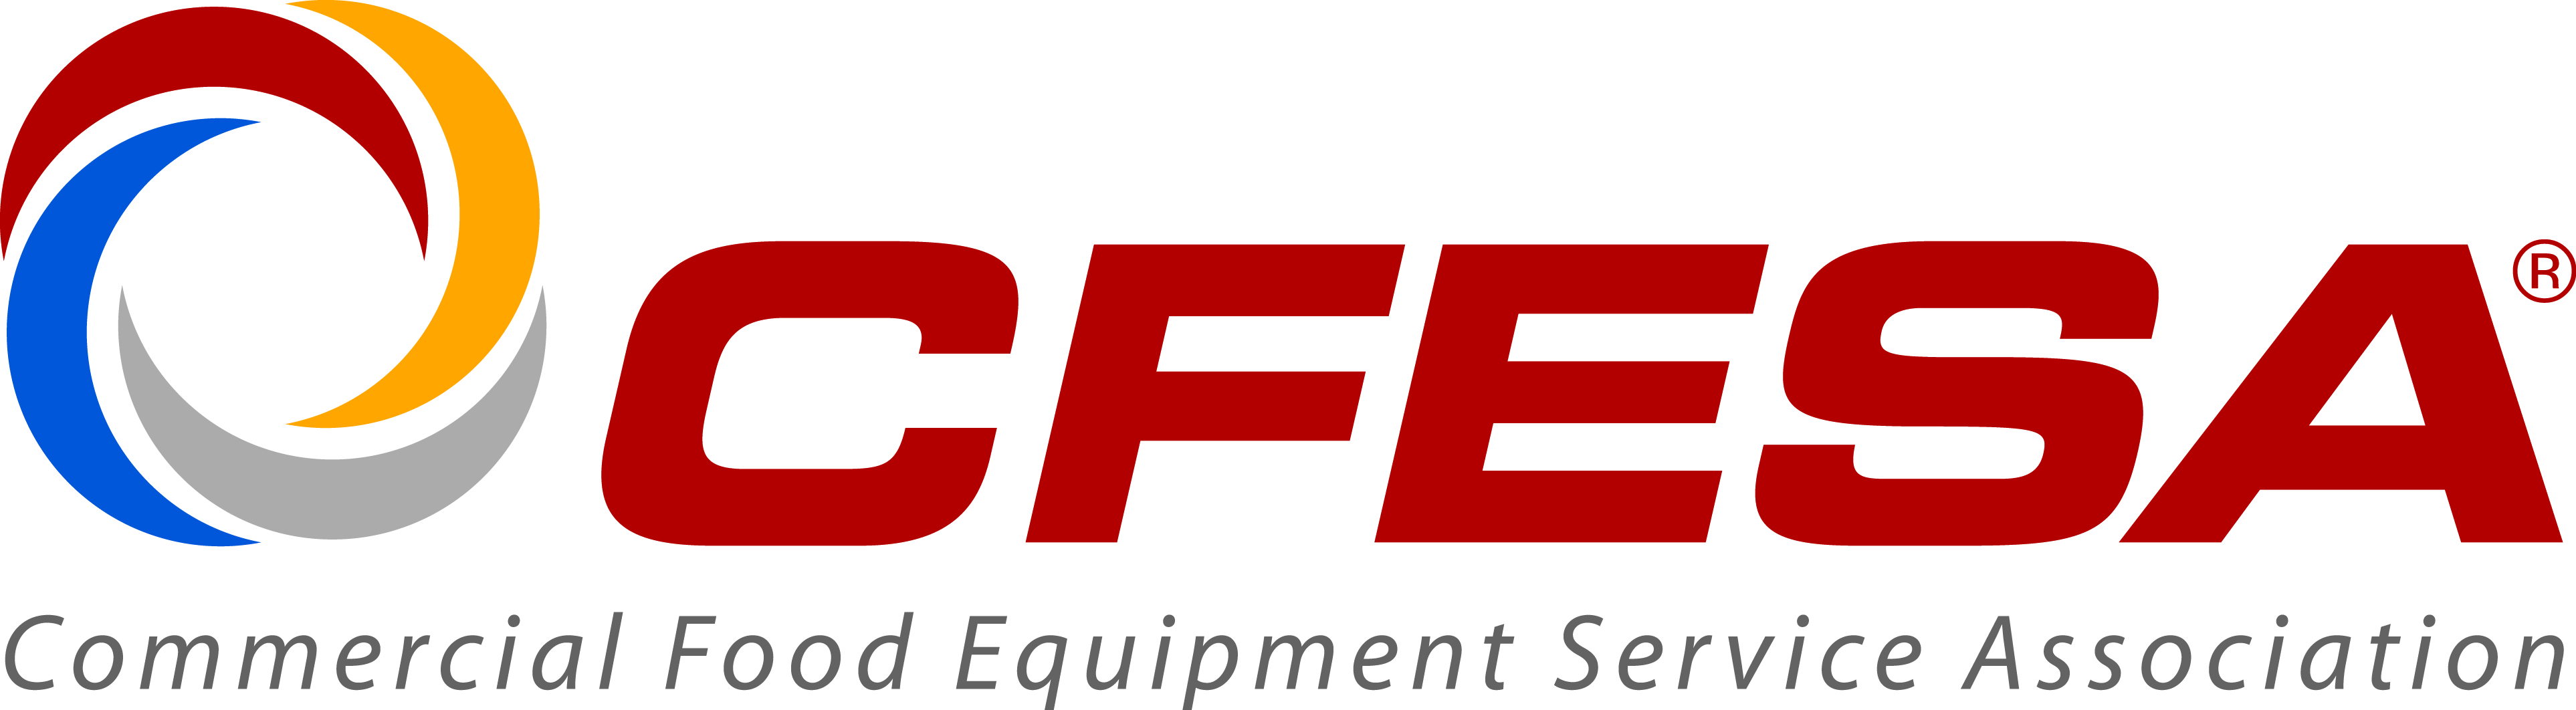 CFESA | Commercial Food Equipment Service Association